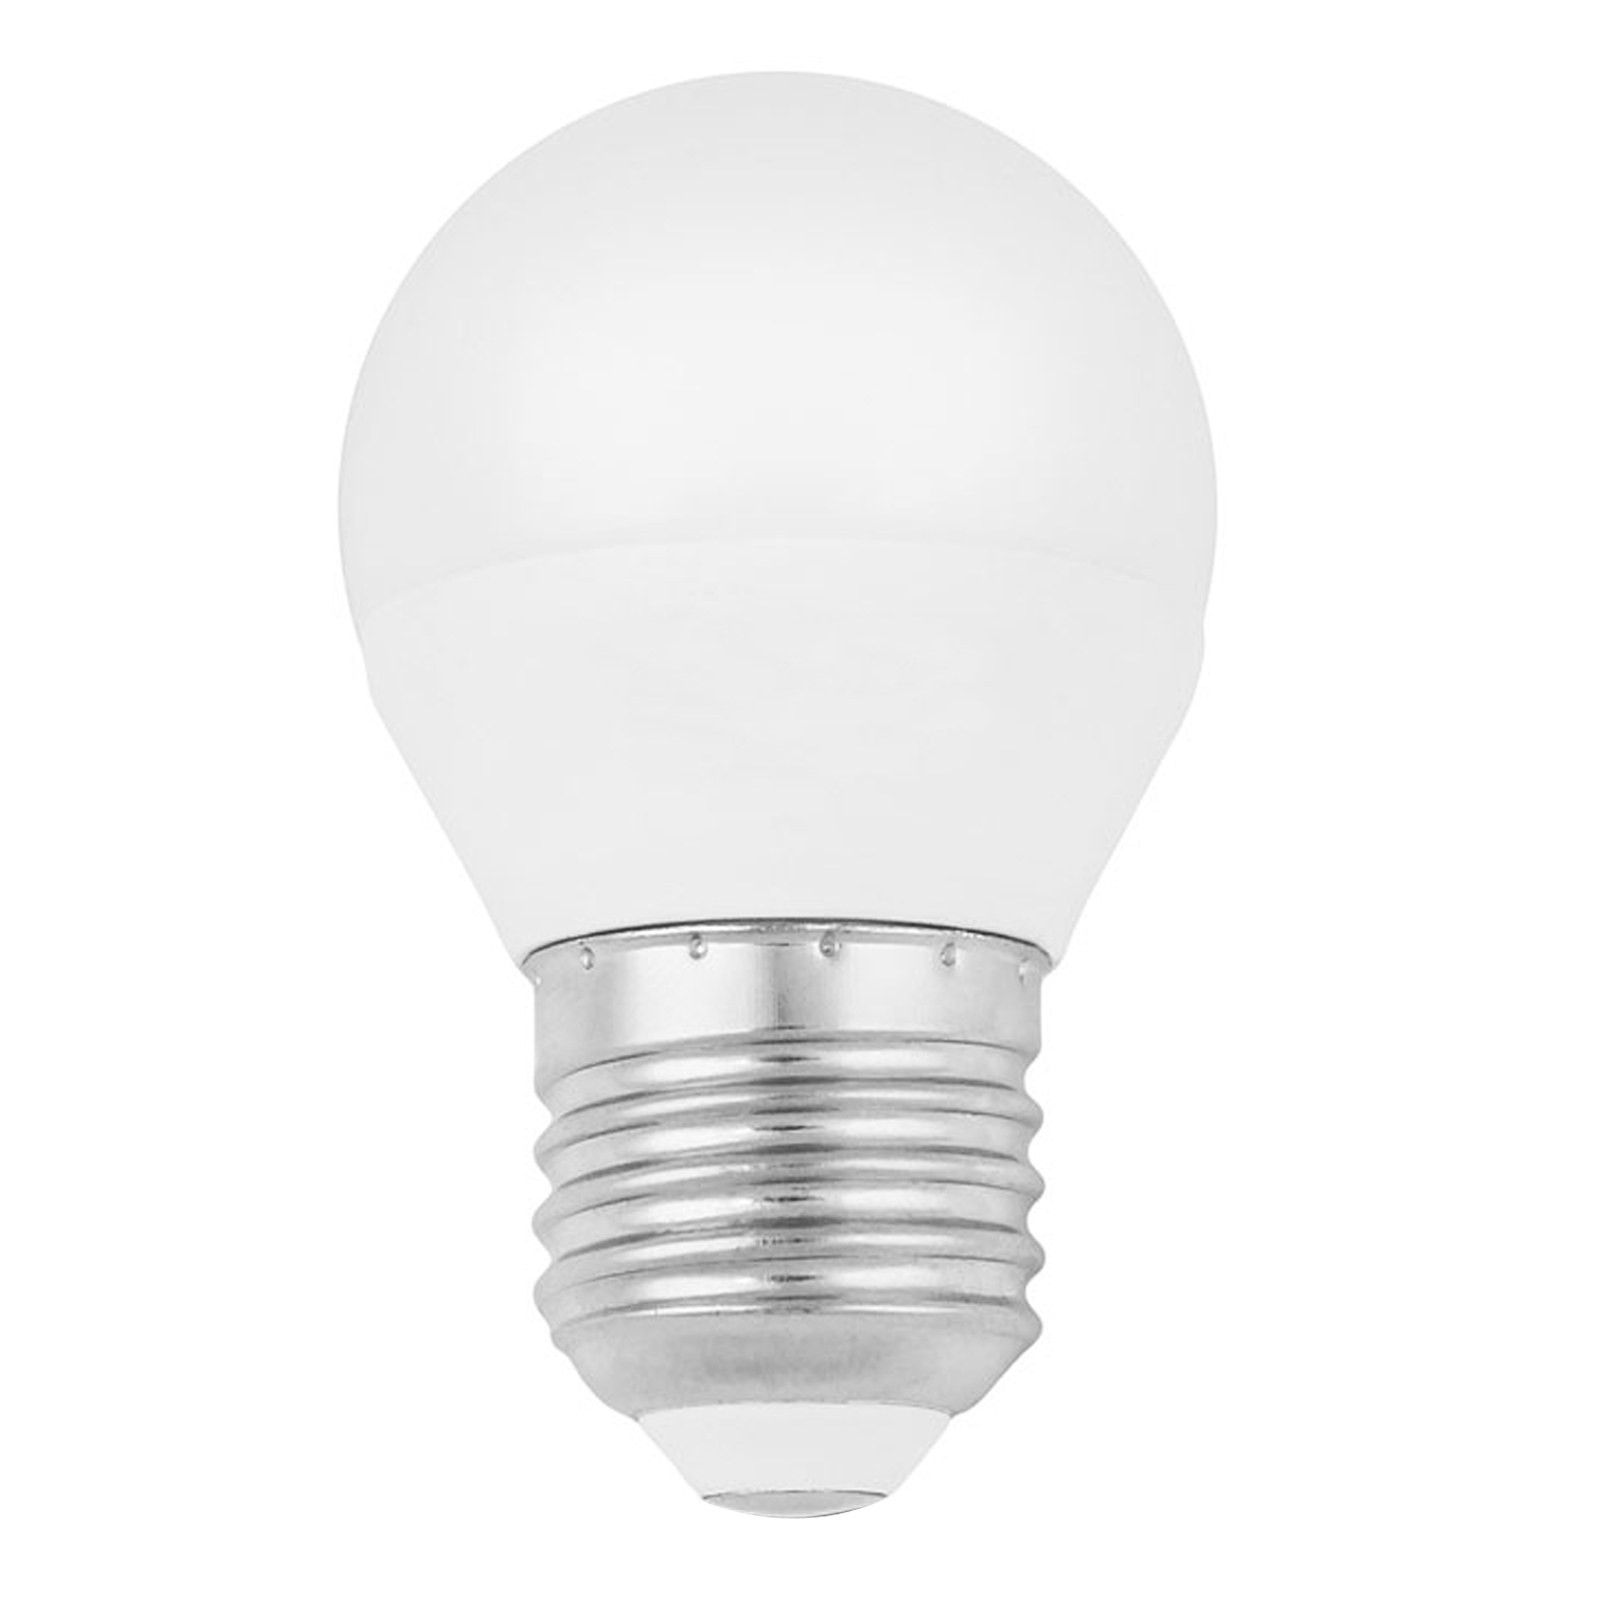 Lampada lampadina led e27 5 5 w watt mini sfera luce for Lampade e27 a led